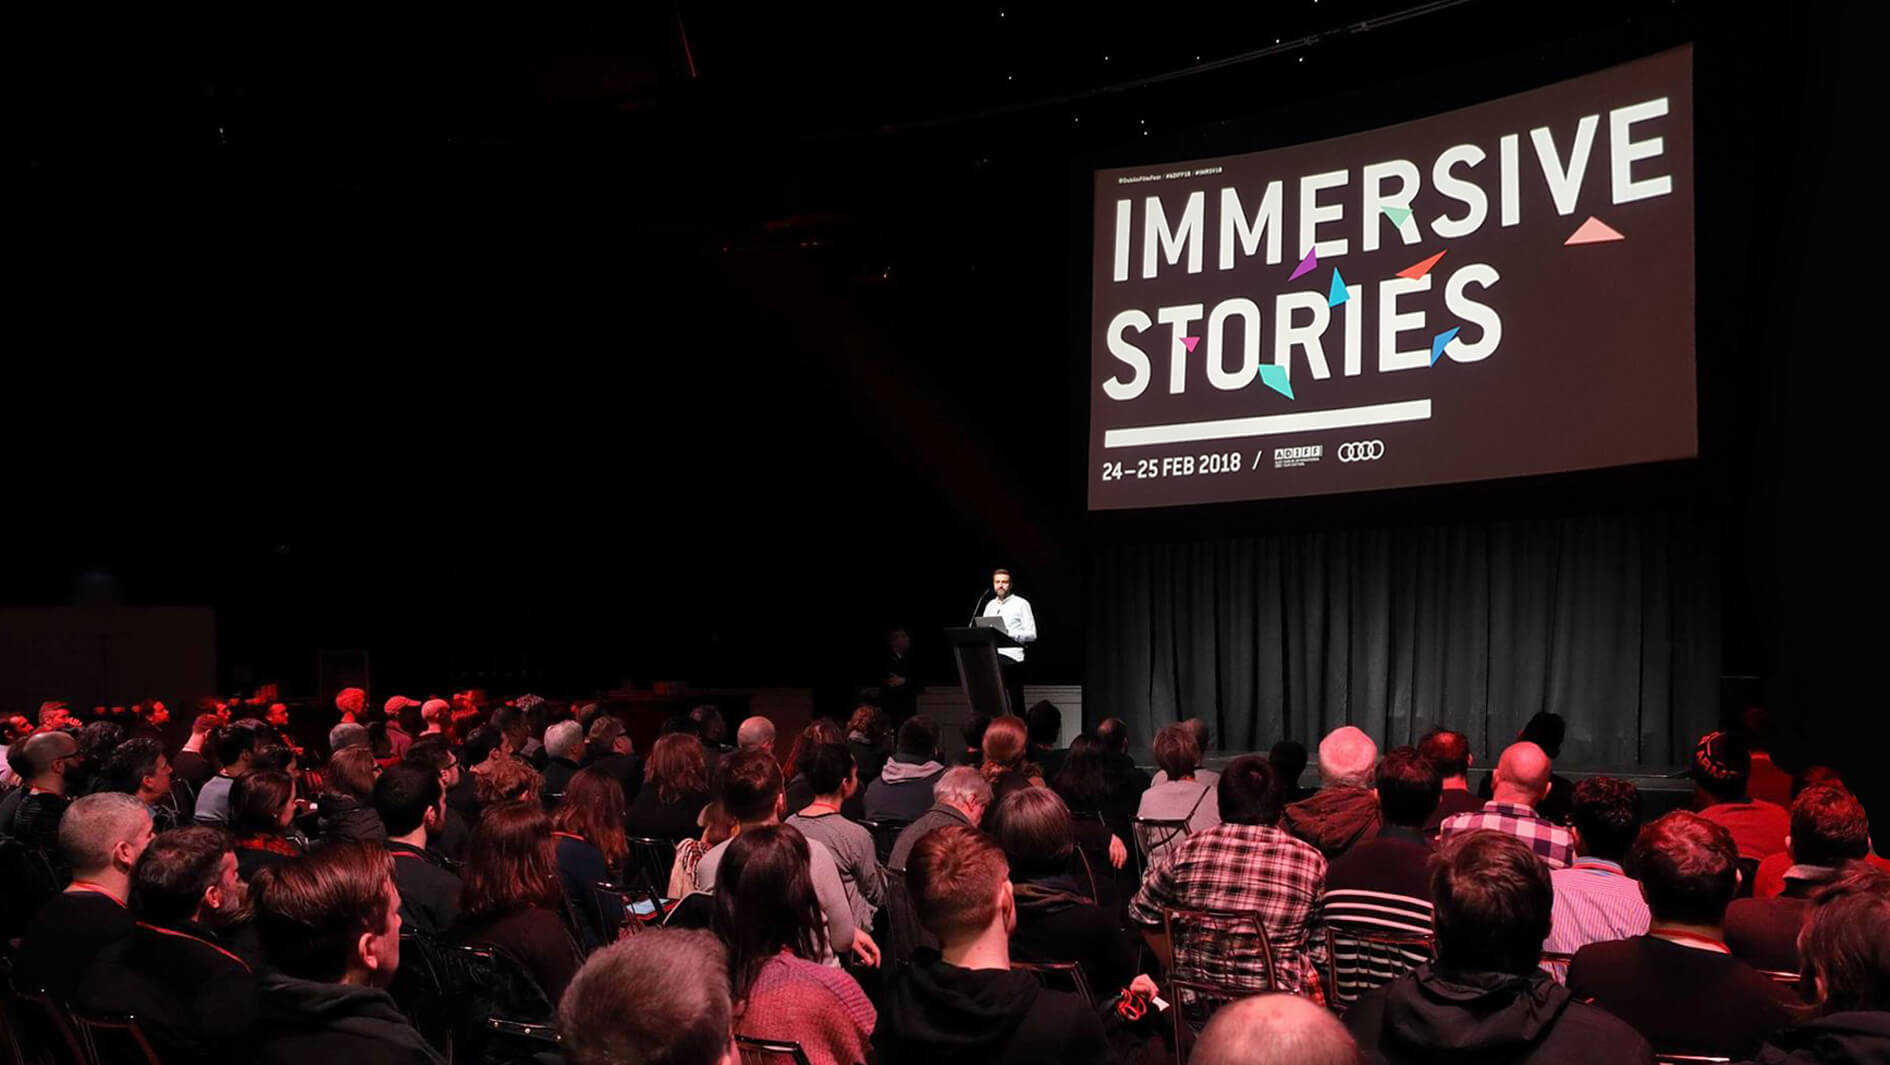 DIFF / Immersive Stories event